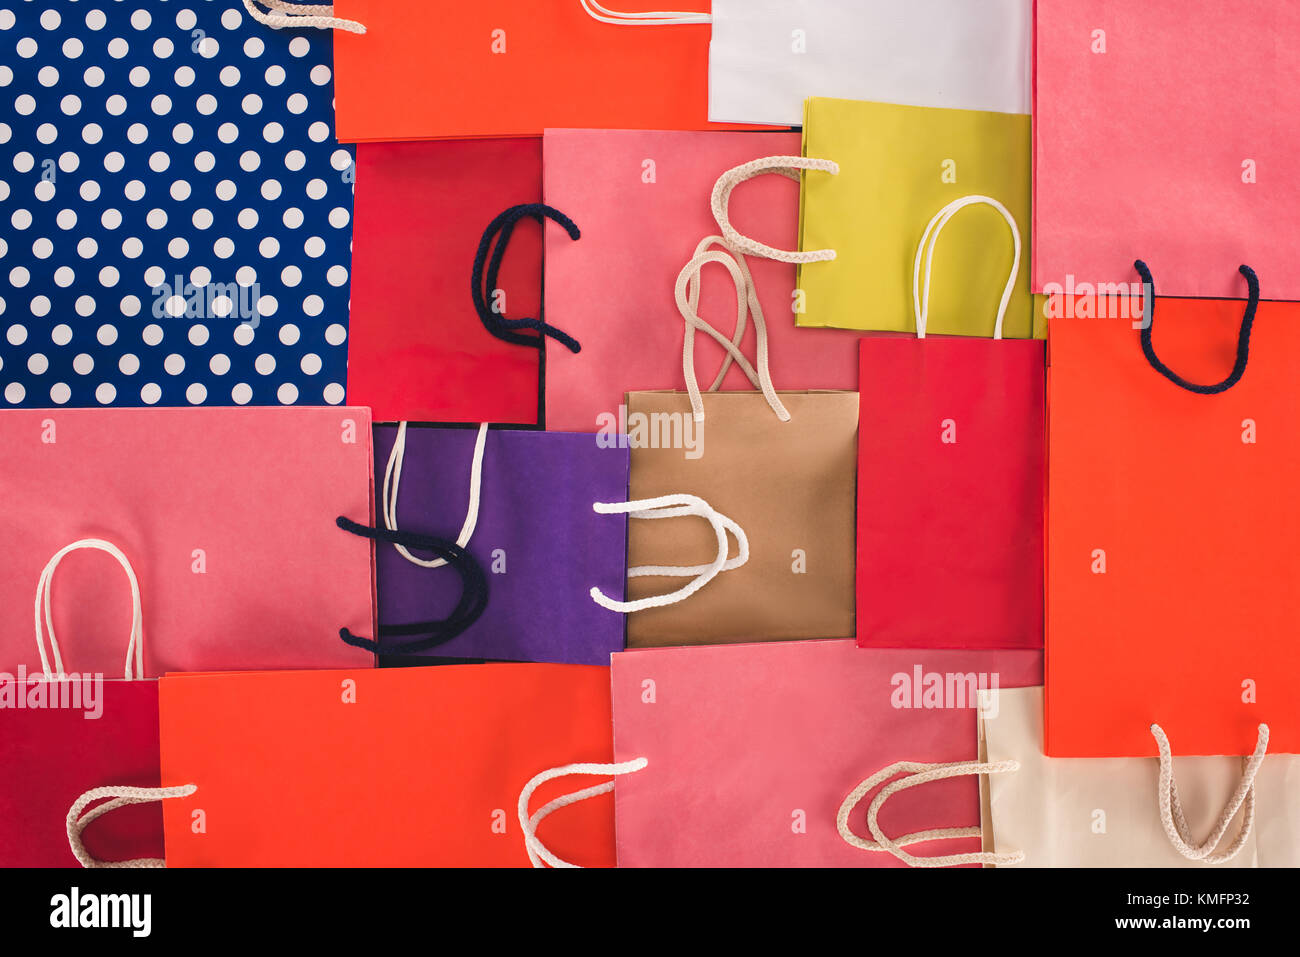 colorful shopping bags - Stock Image